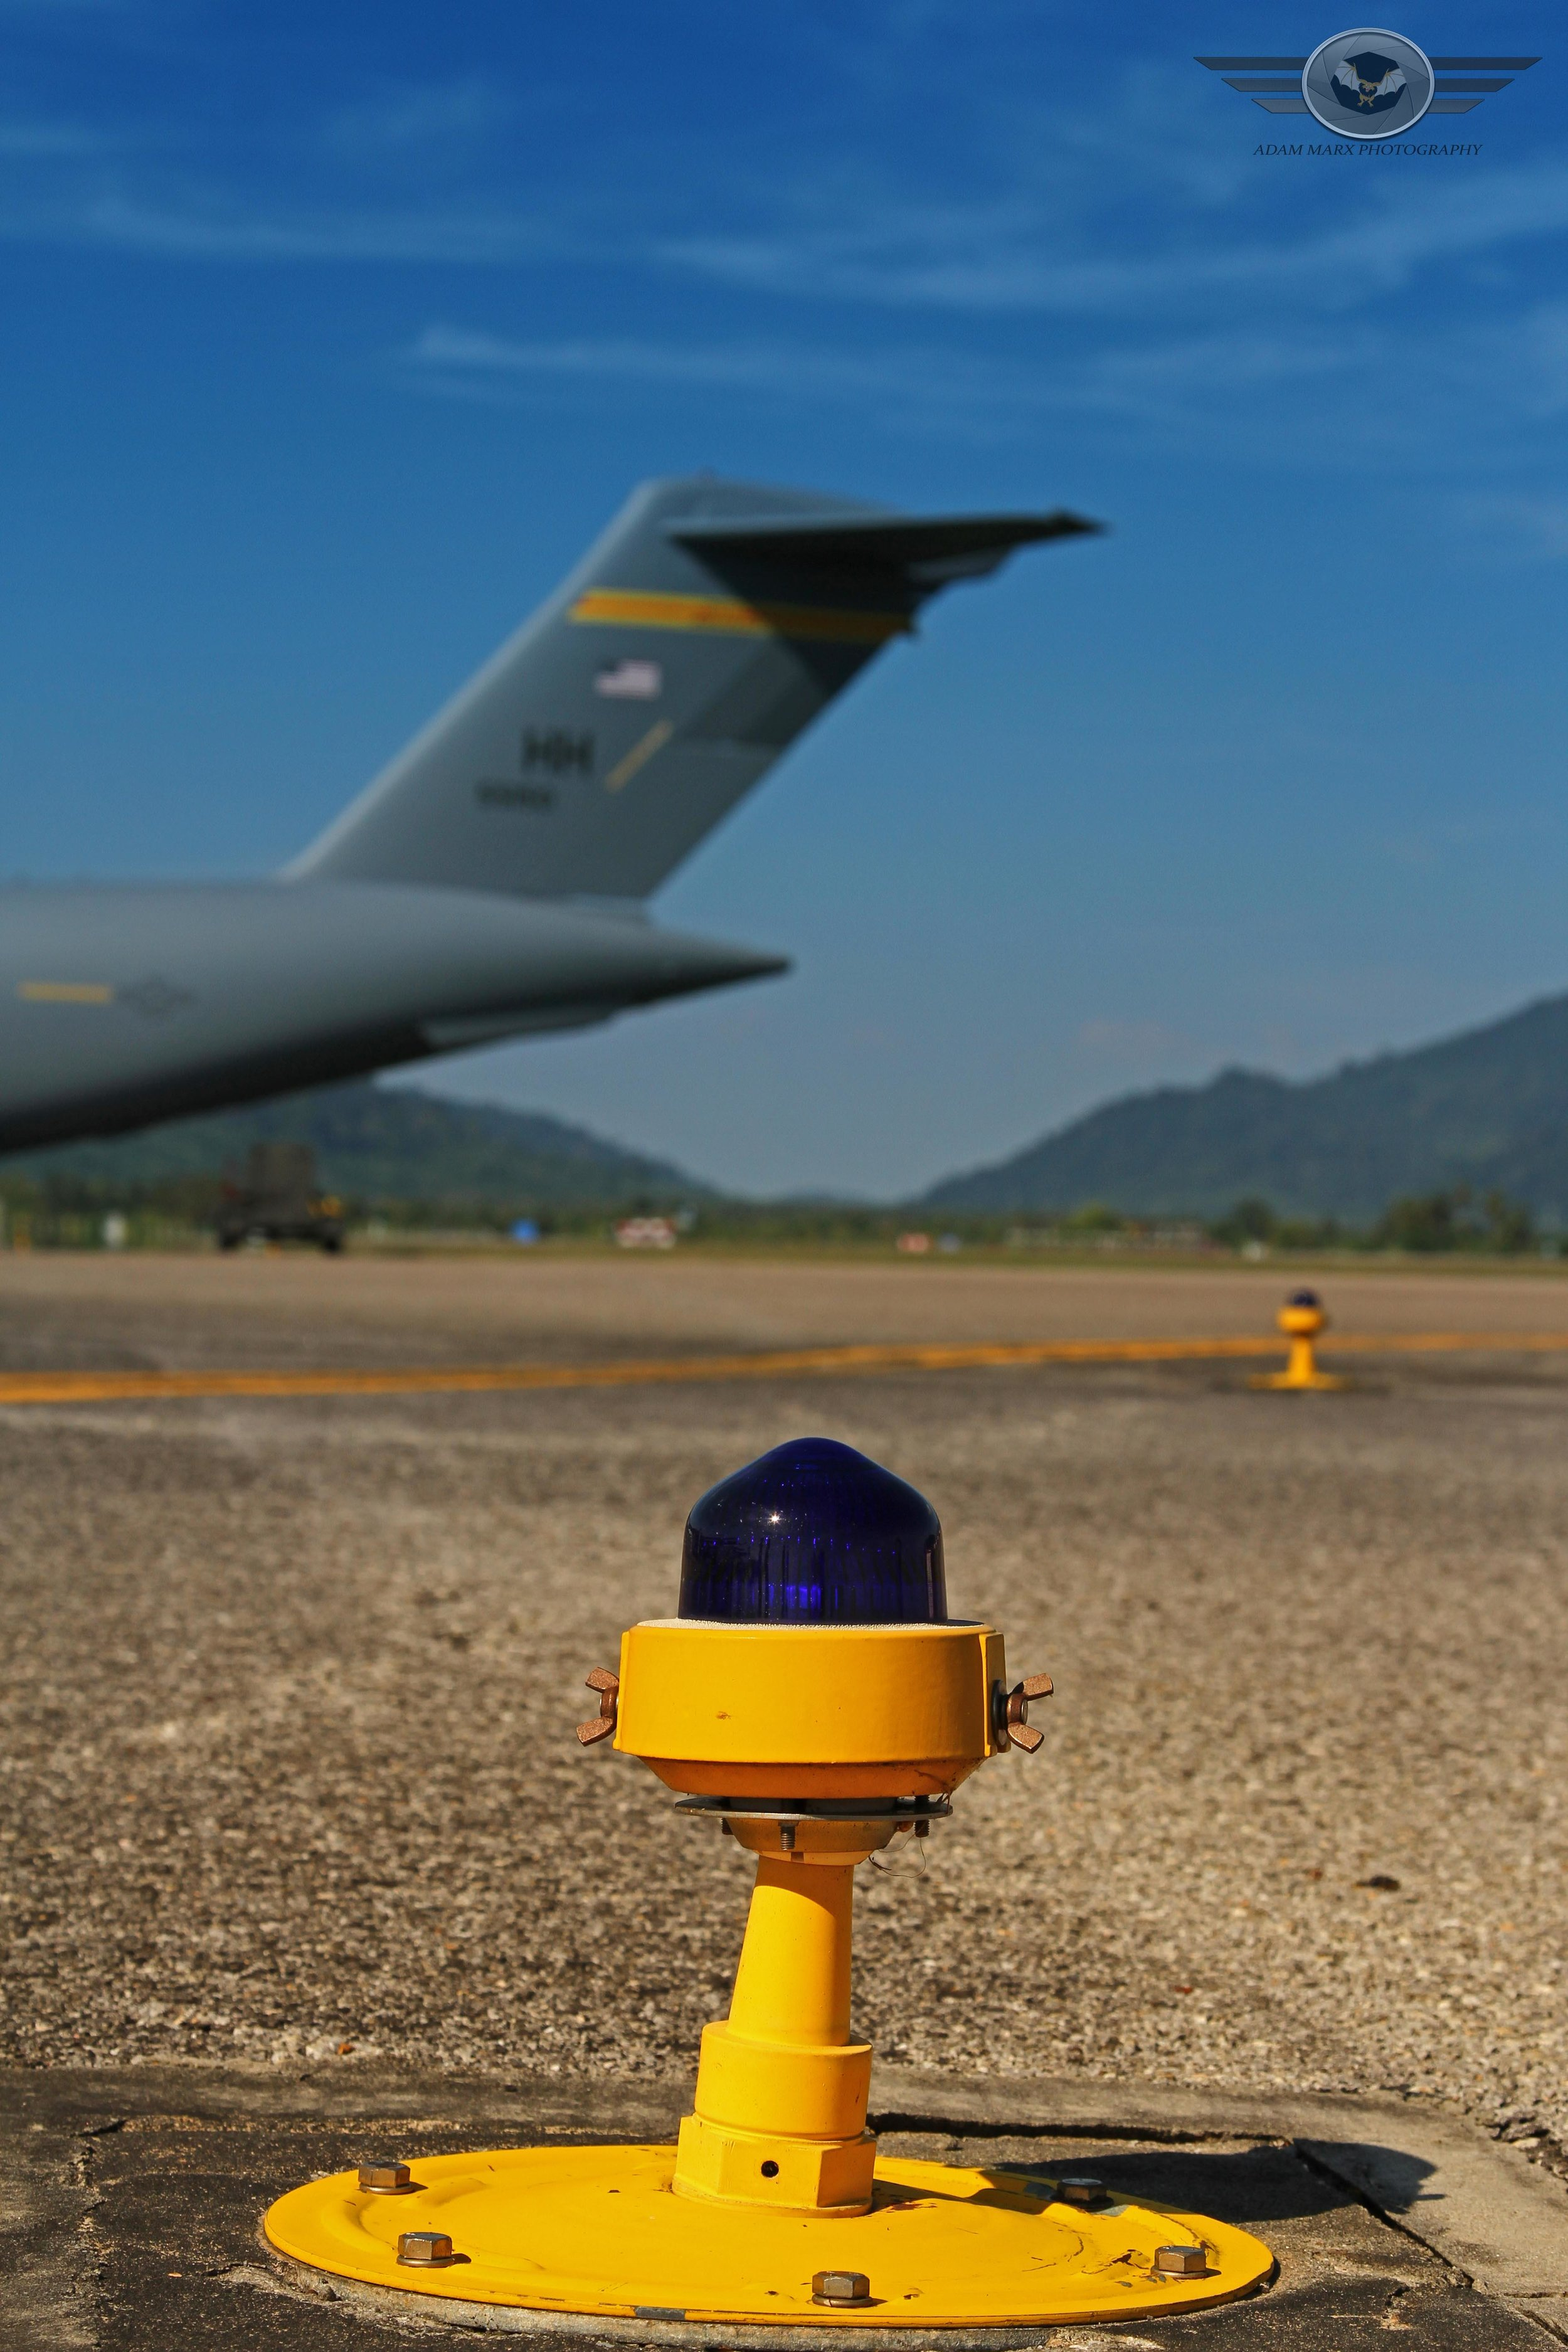 A creative shot in the foreground a taxilighty and in the background a tail of an C-17 from Hawaii.